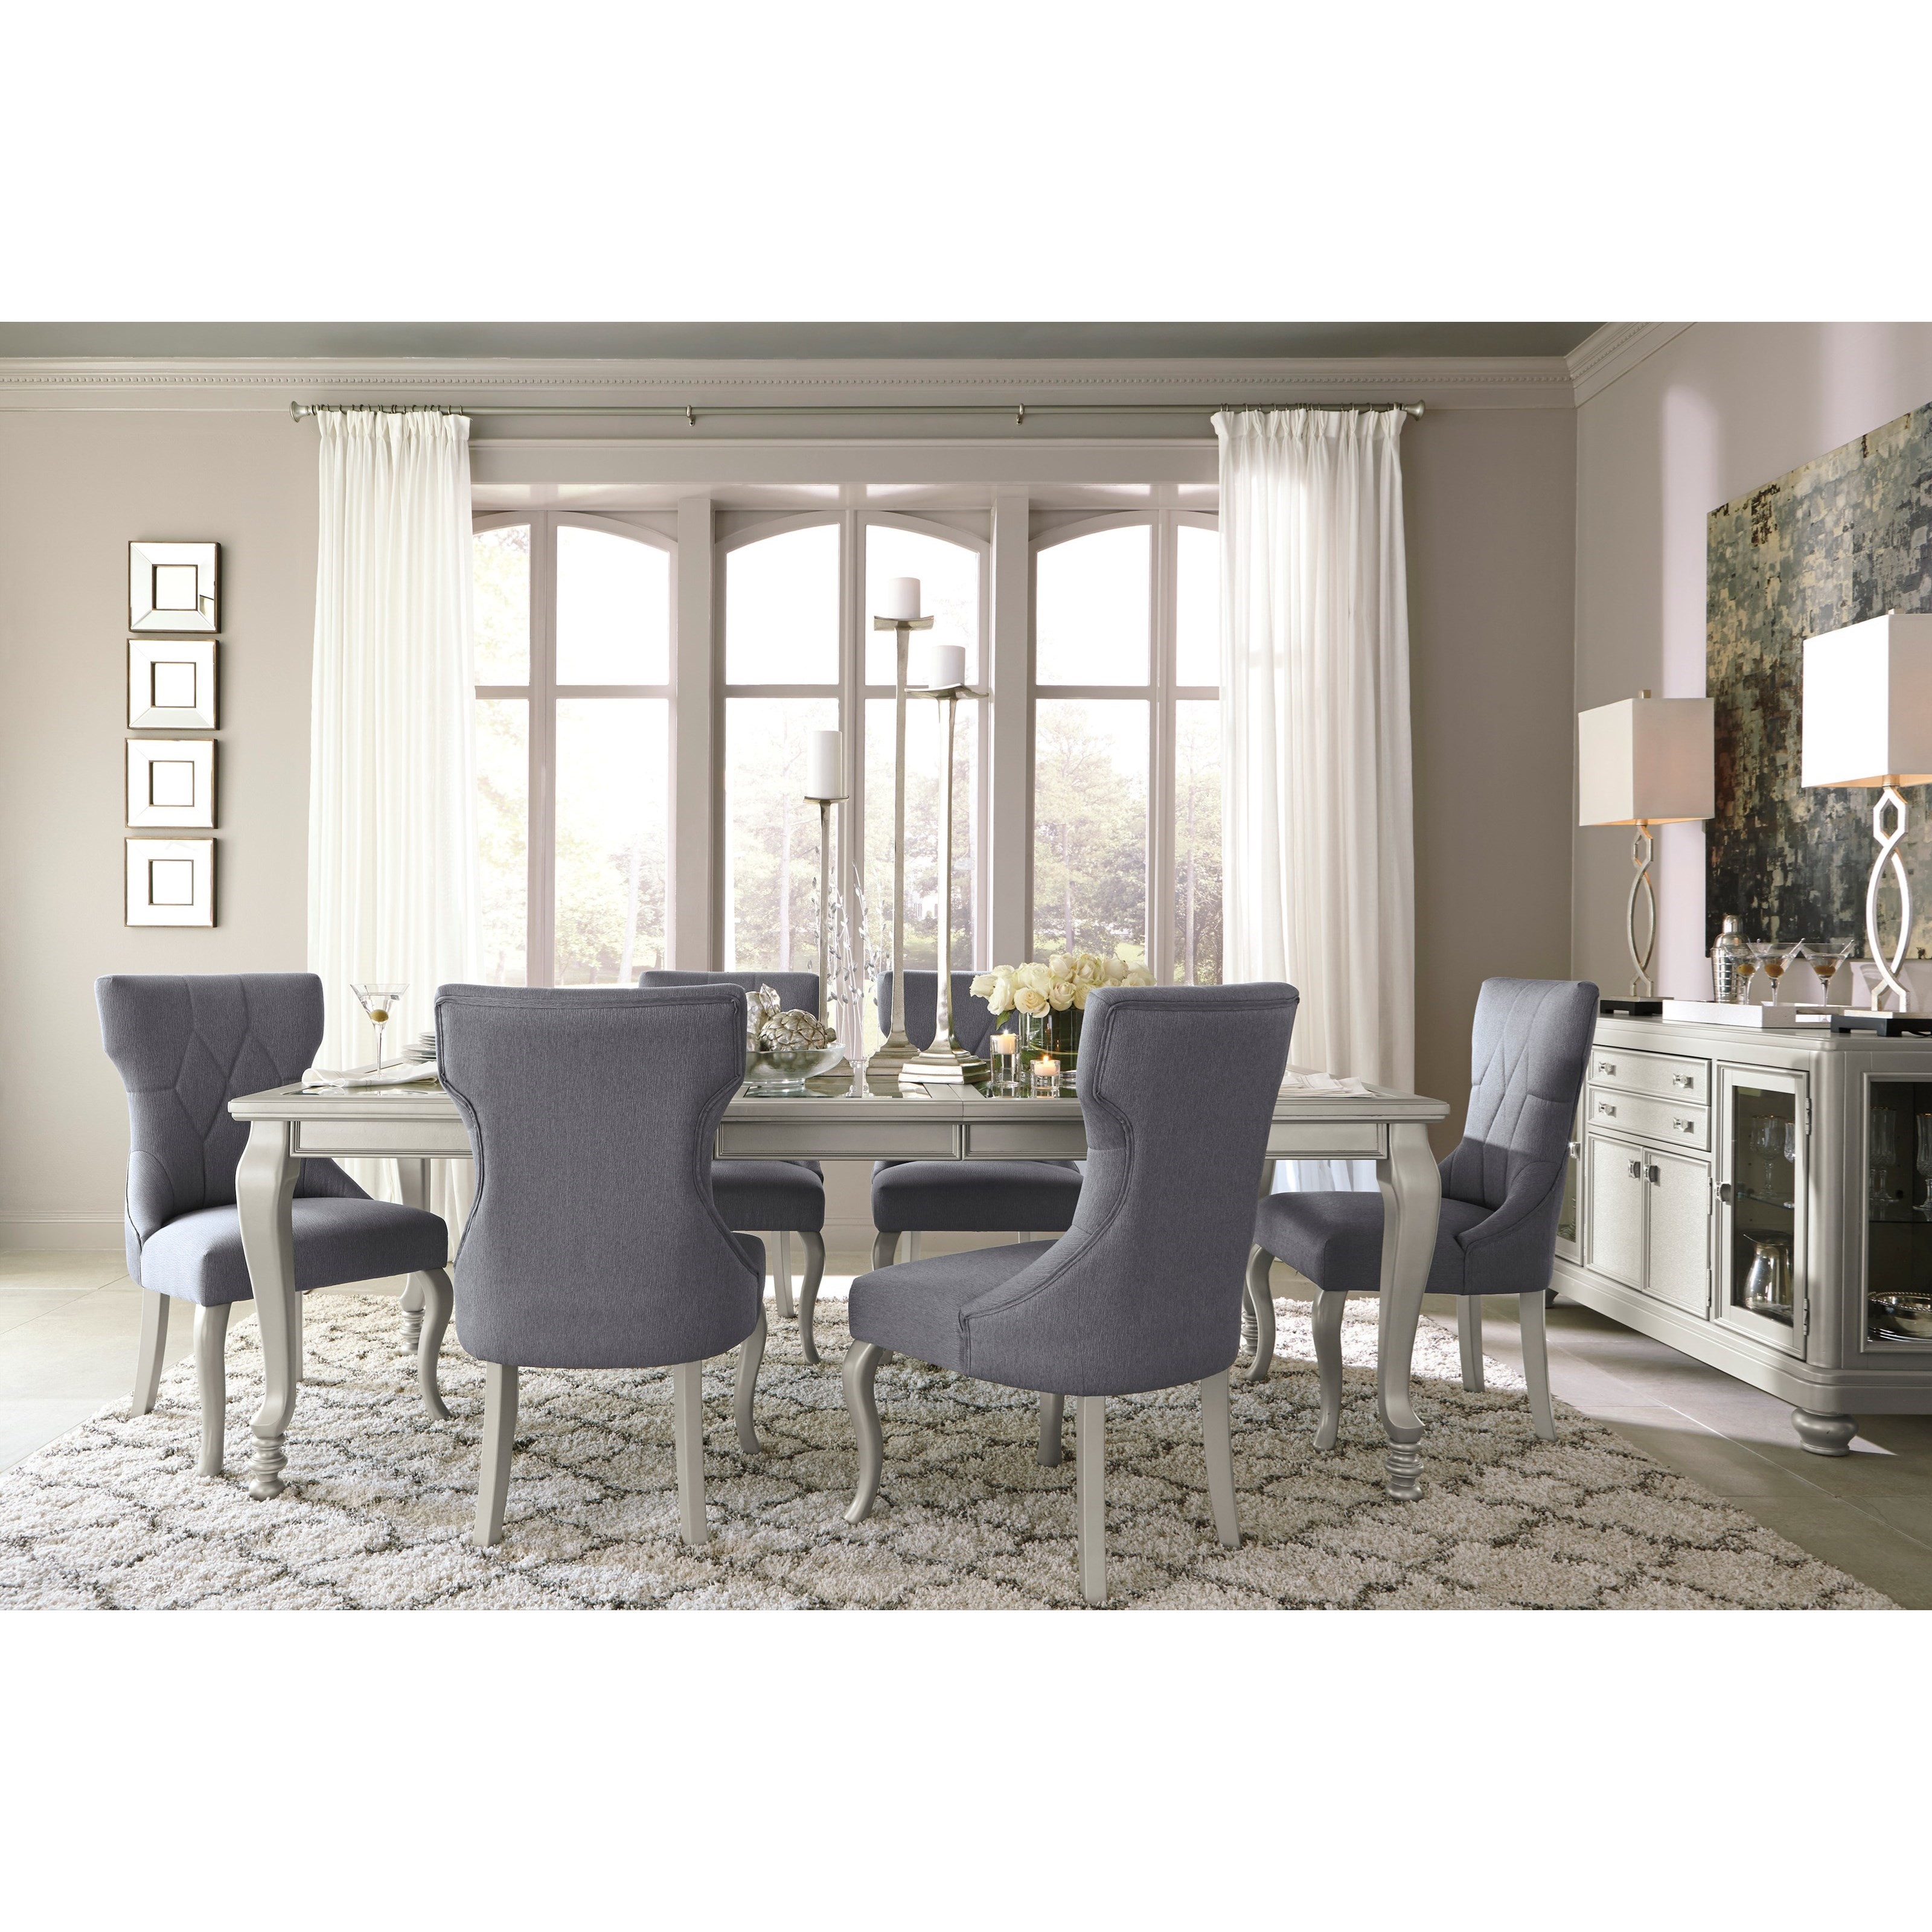 Signature Design by Ashley Coralayne Casual Dining Room Group - Item Number: D650 Dining Room Group 1